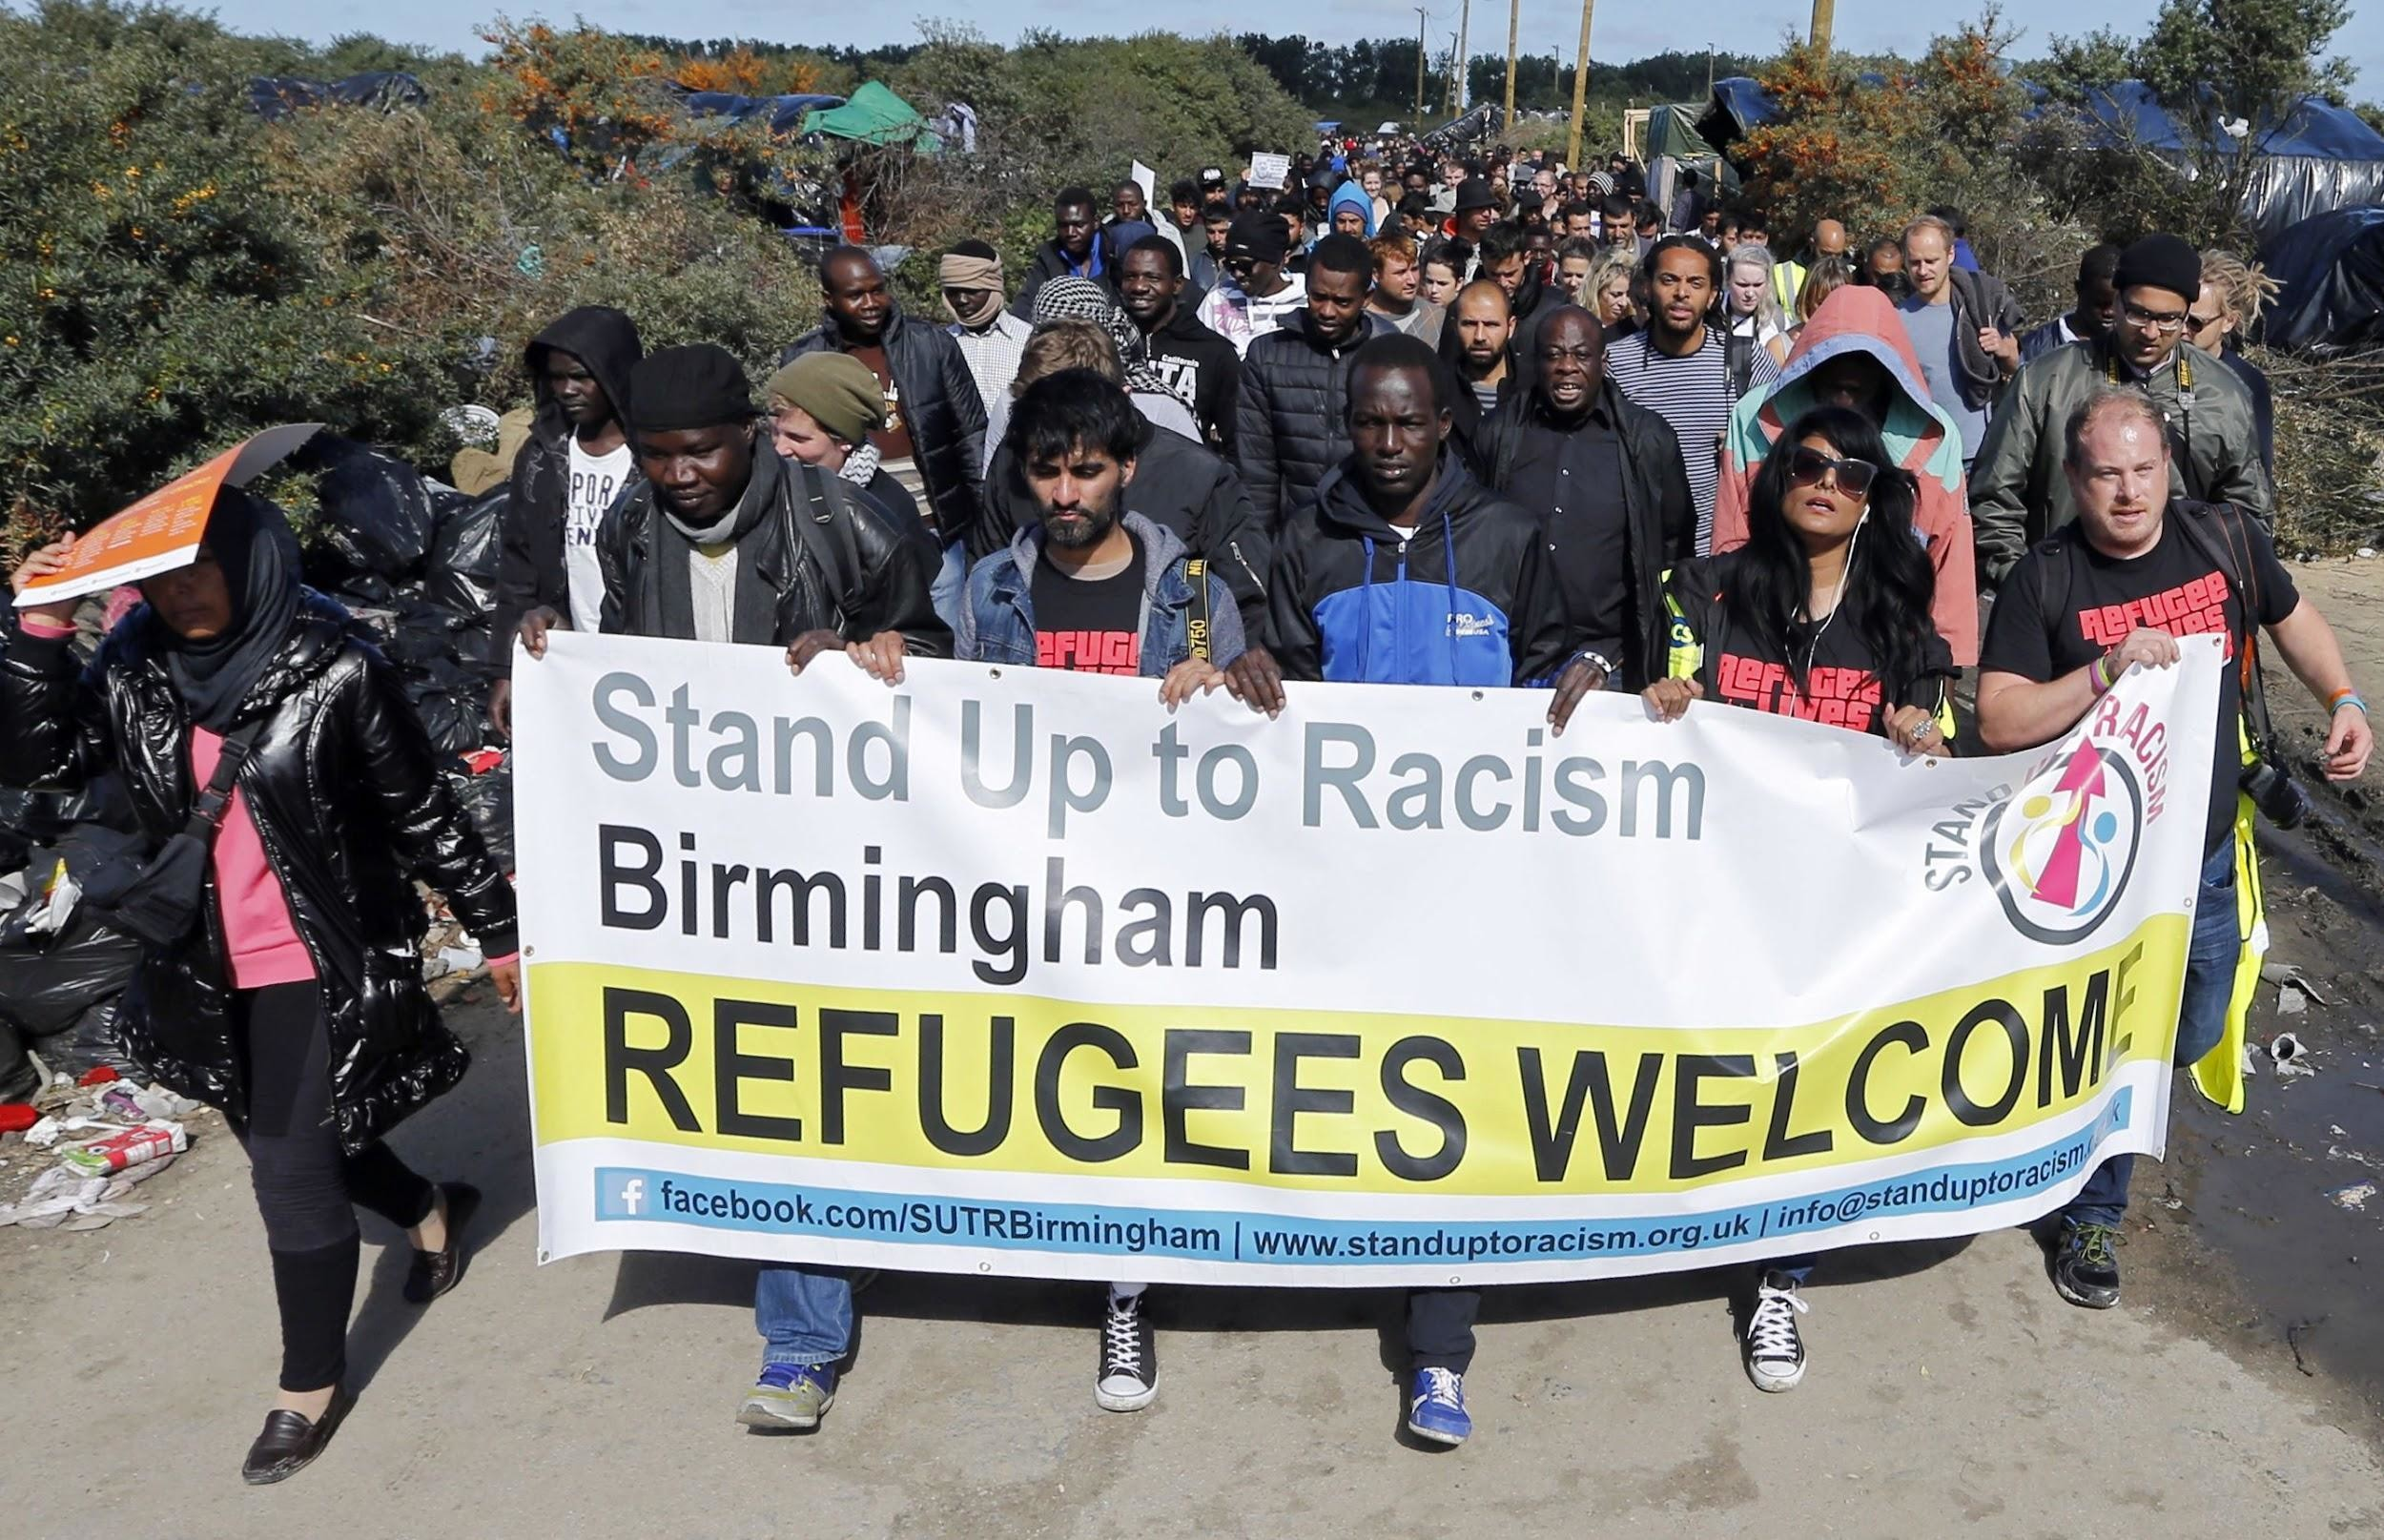 Civil society organizations march in support of refugees